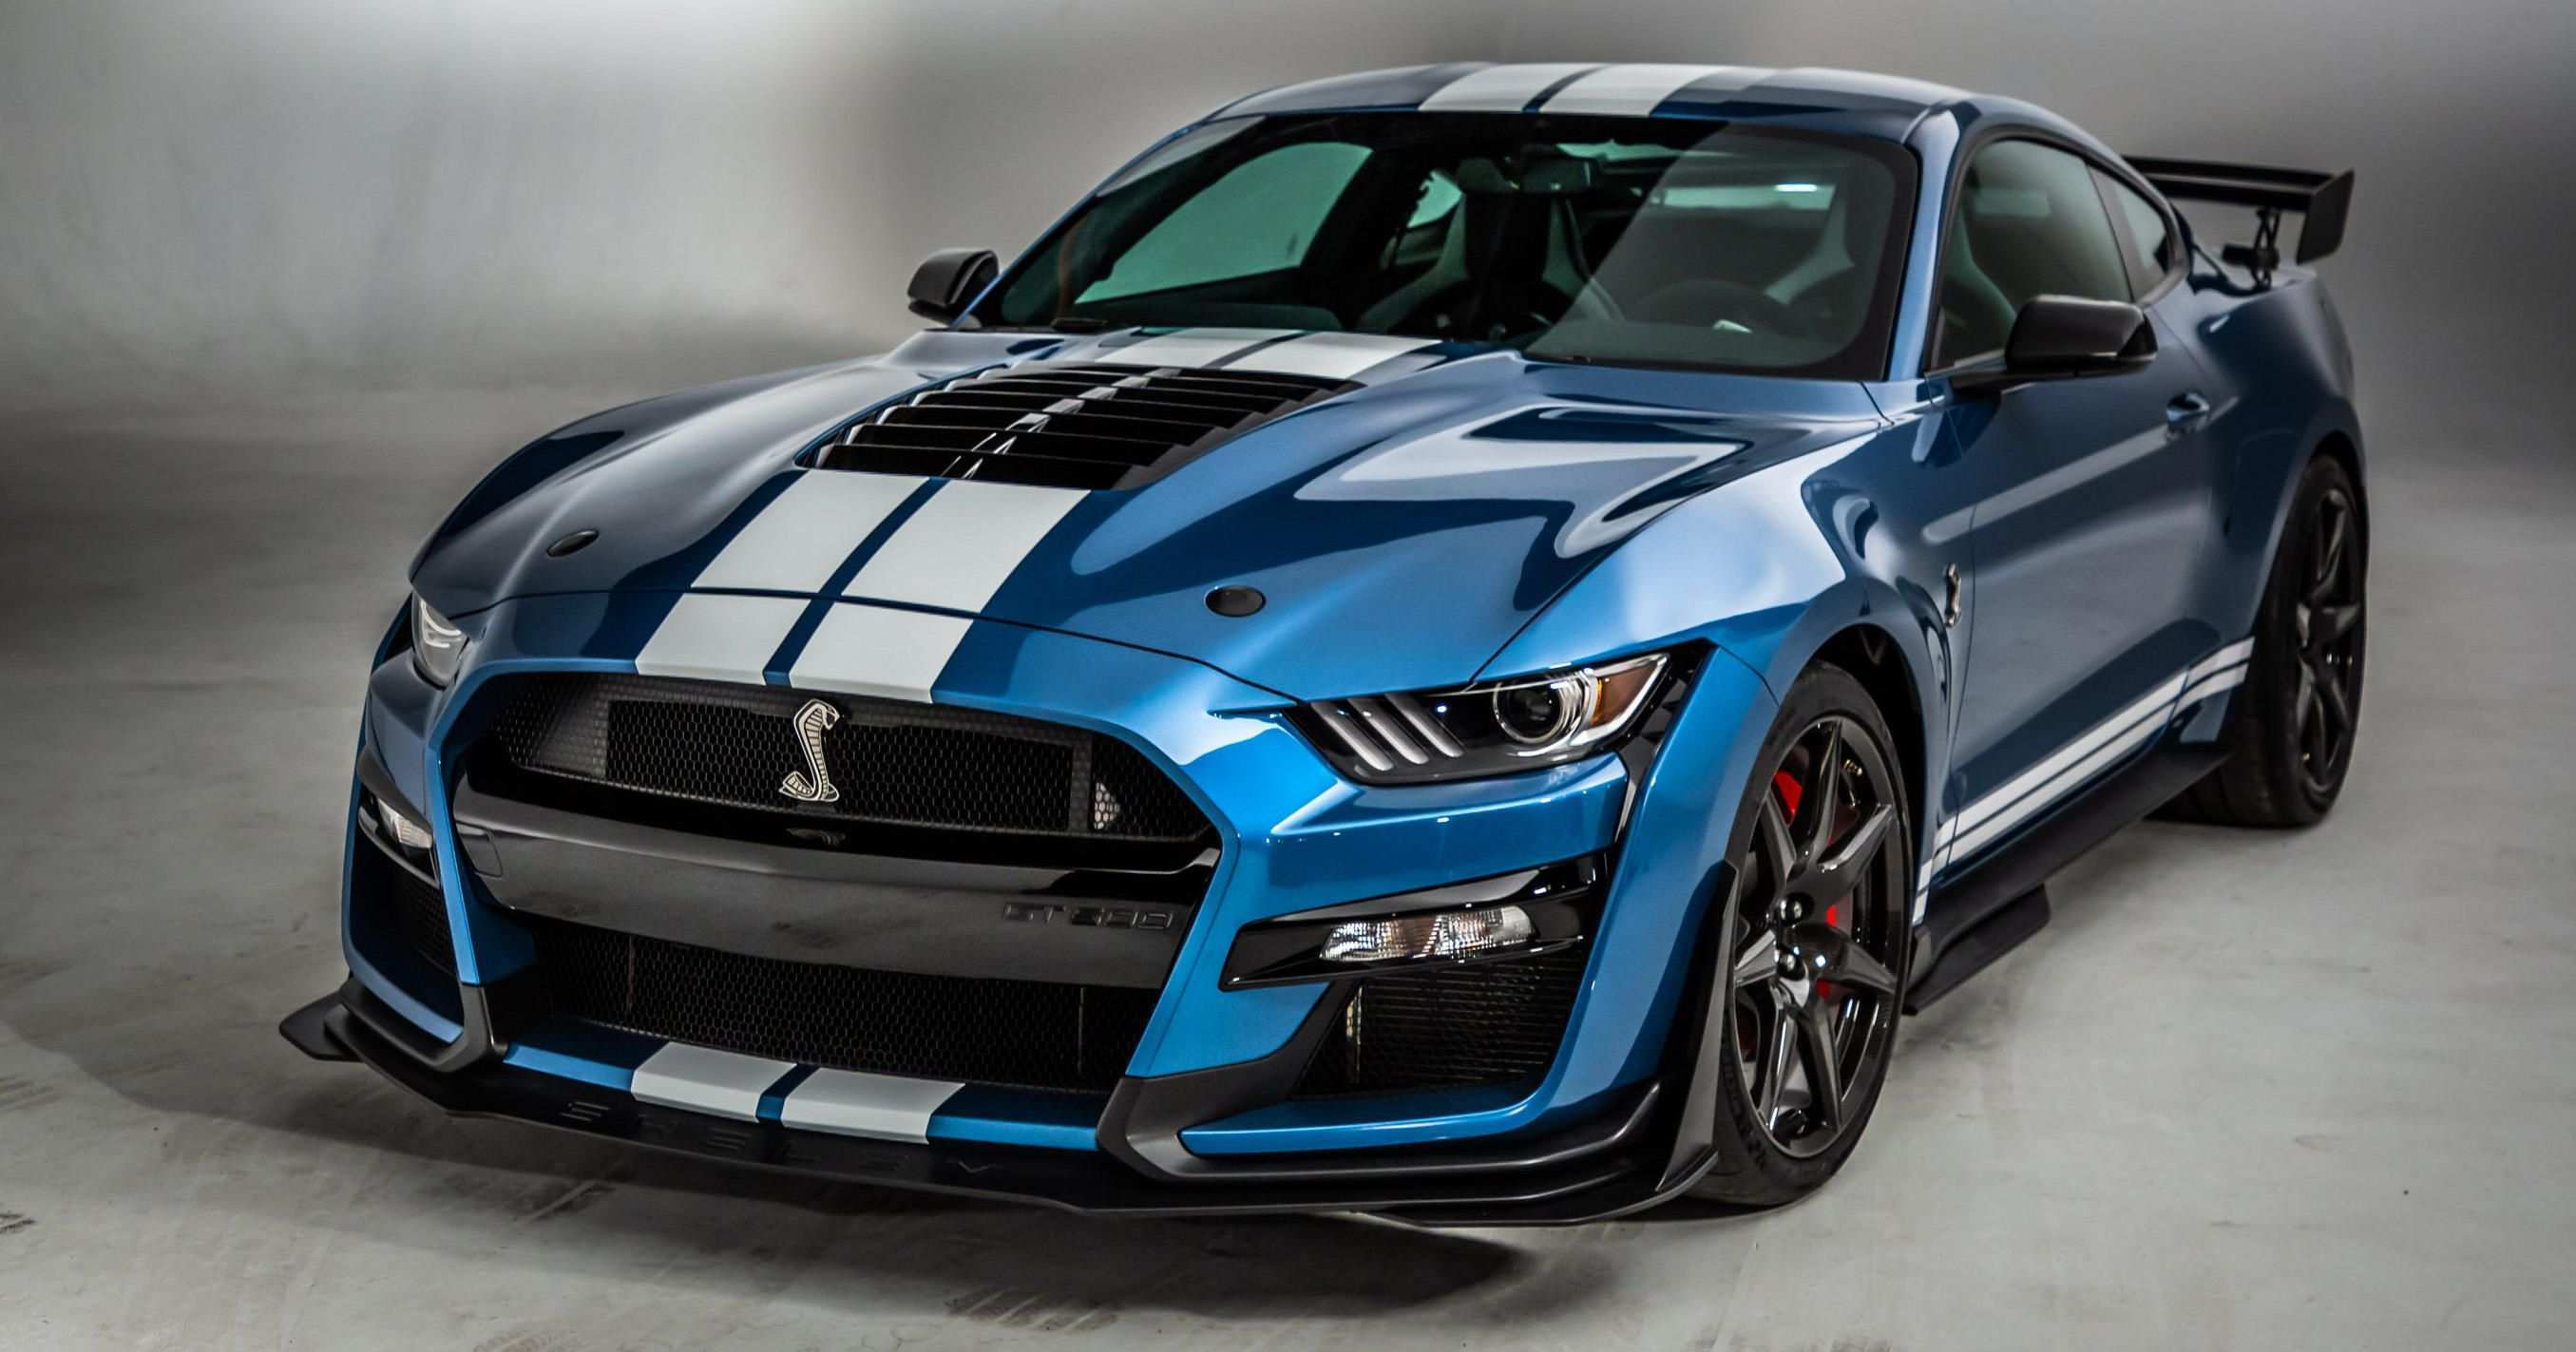 40 Great 2020 Mustang Gt500 Exterior and Interior with 2020 Mustang Gt500